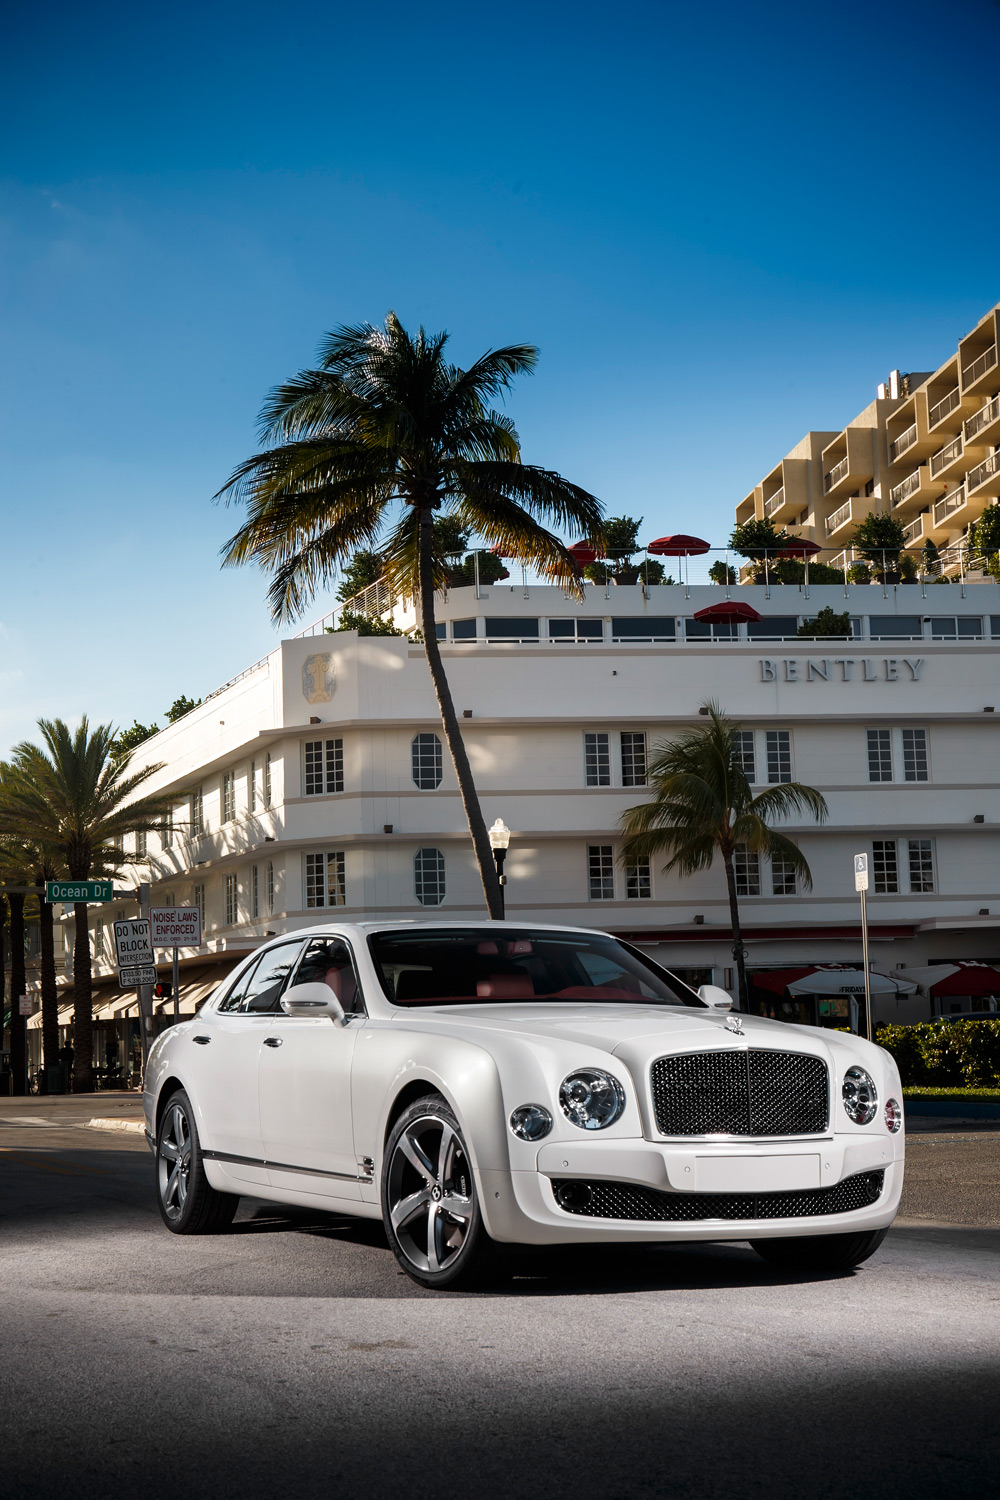 stock attachment bentley magazine categories autos larte bmw tuningblog thousands subscription design tens reports whether more acura exotics audi bentayga has regardless in or tuning az widebody of suv like our en vw